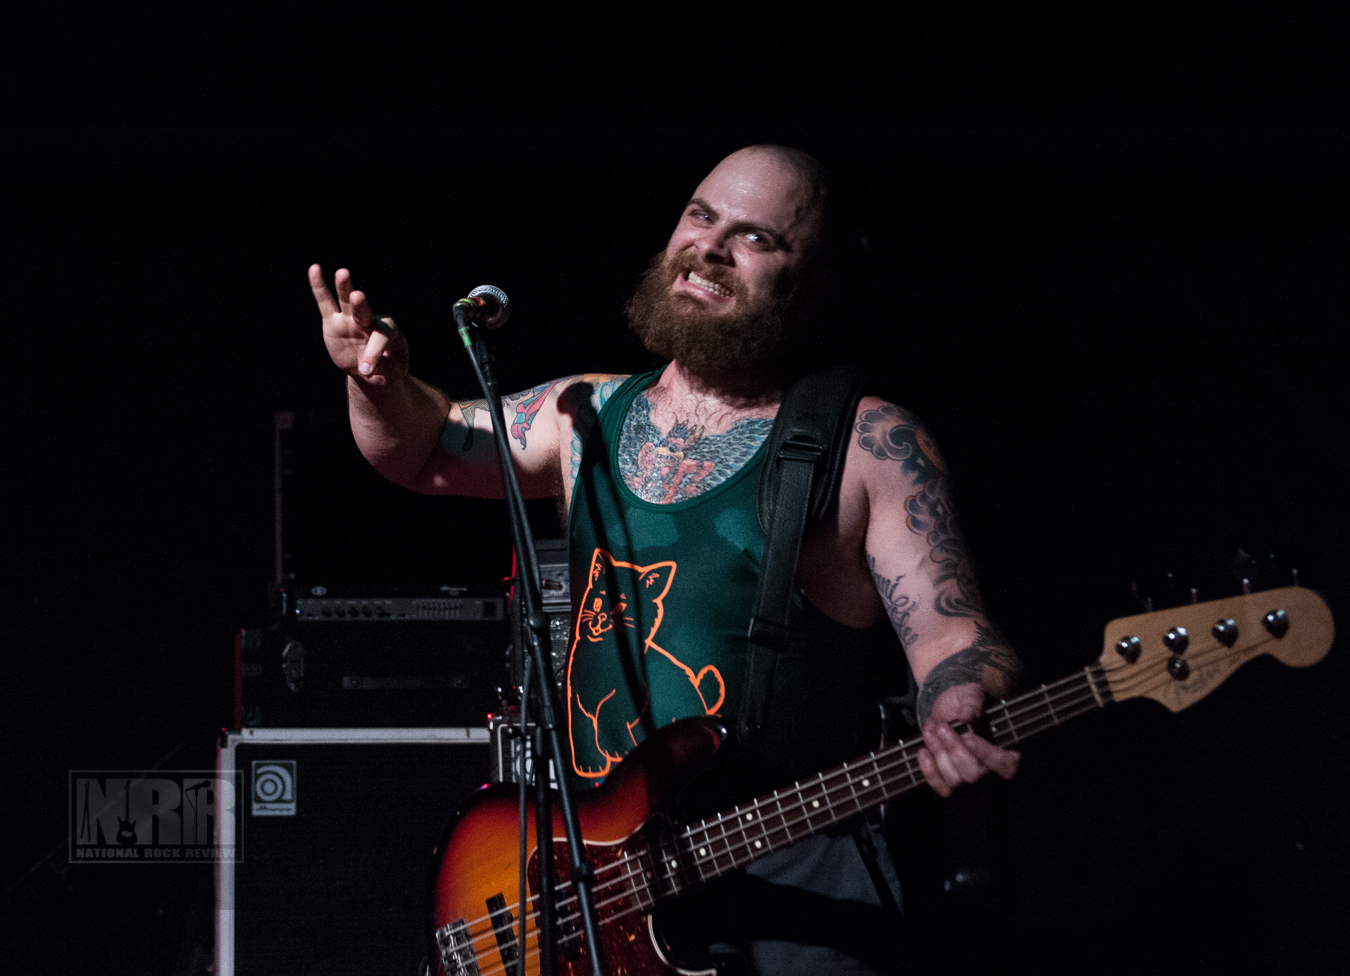 MeatMen-Branx-Portland_OR-20140605-WmRiddle-010.jpg